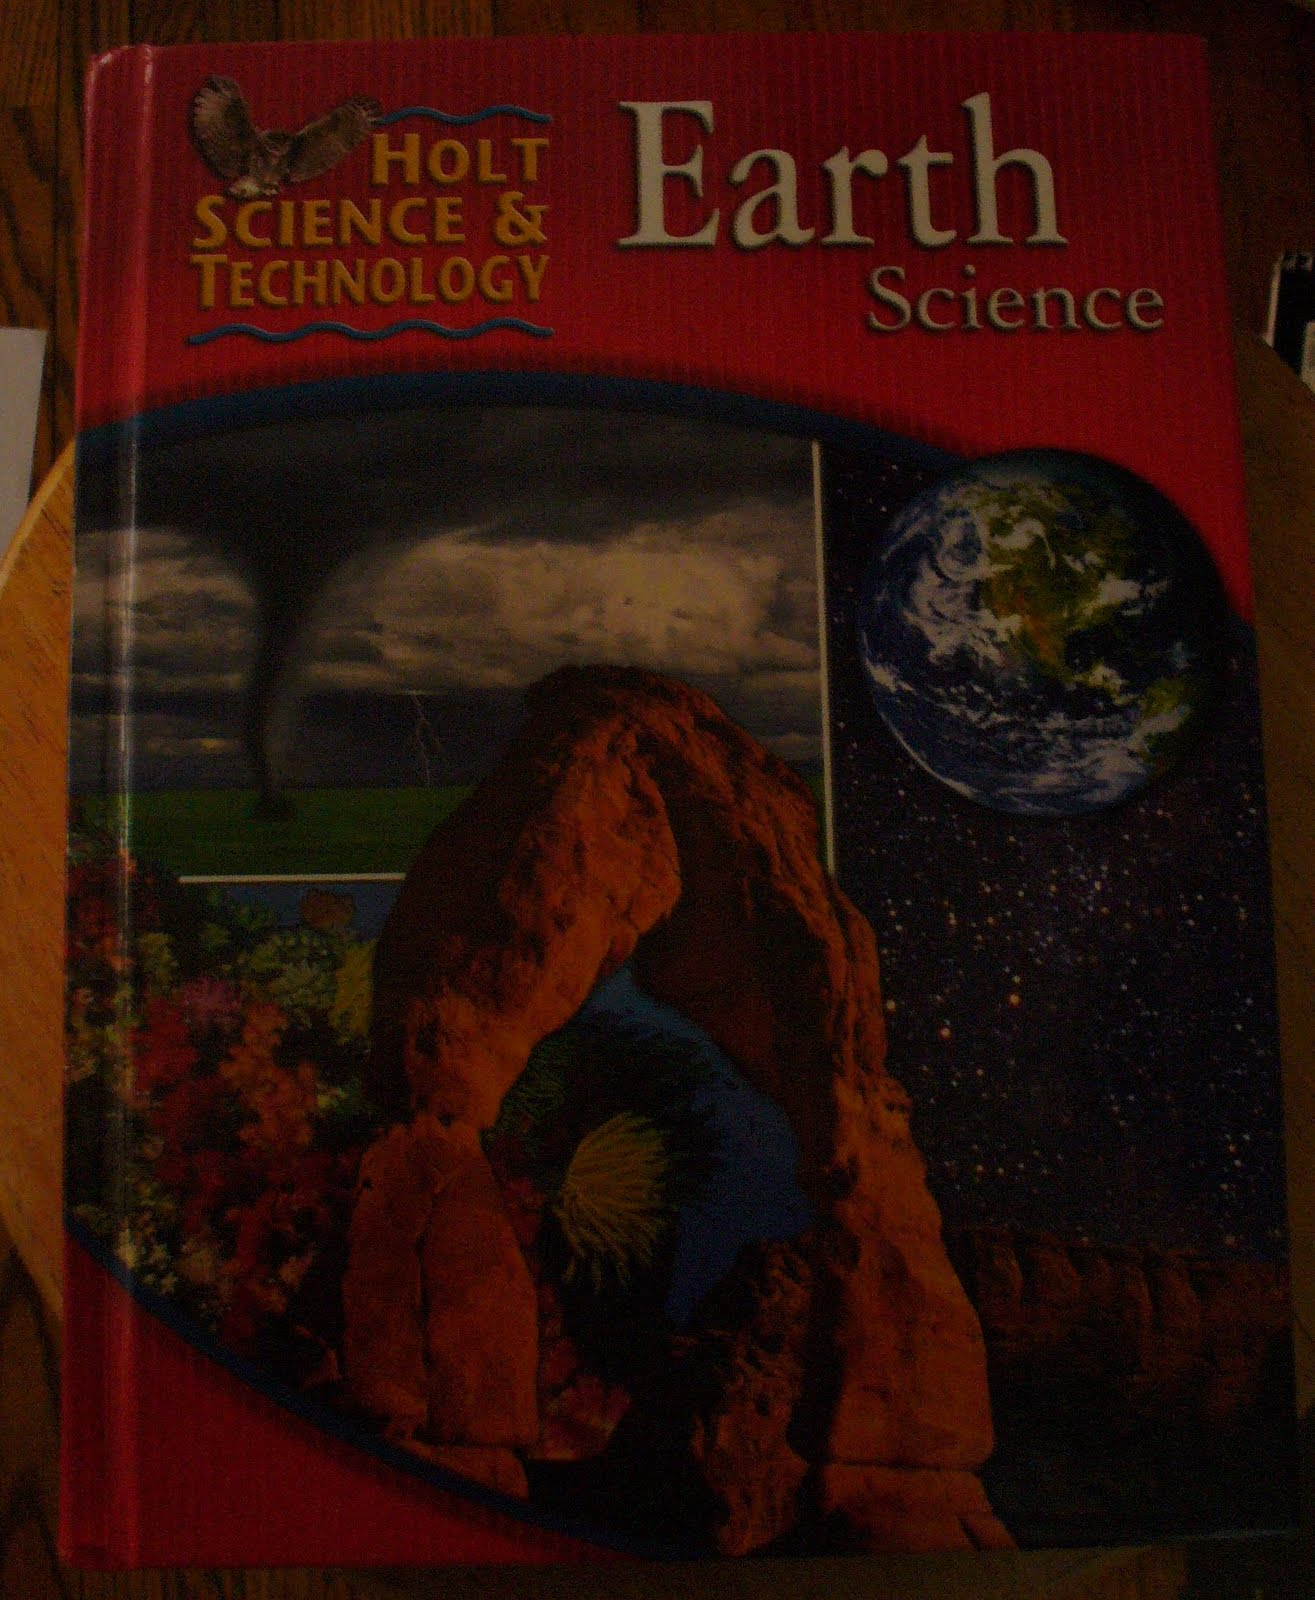 Earth Sciences: The Bloomin' Blog: August 2010